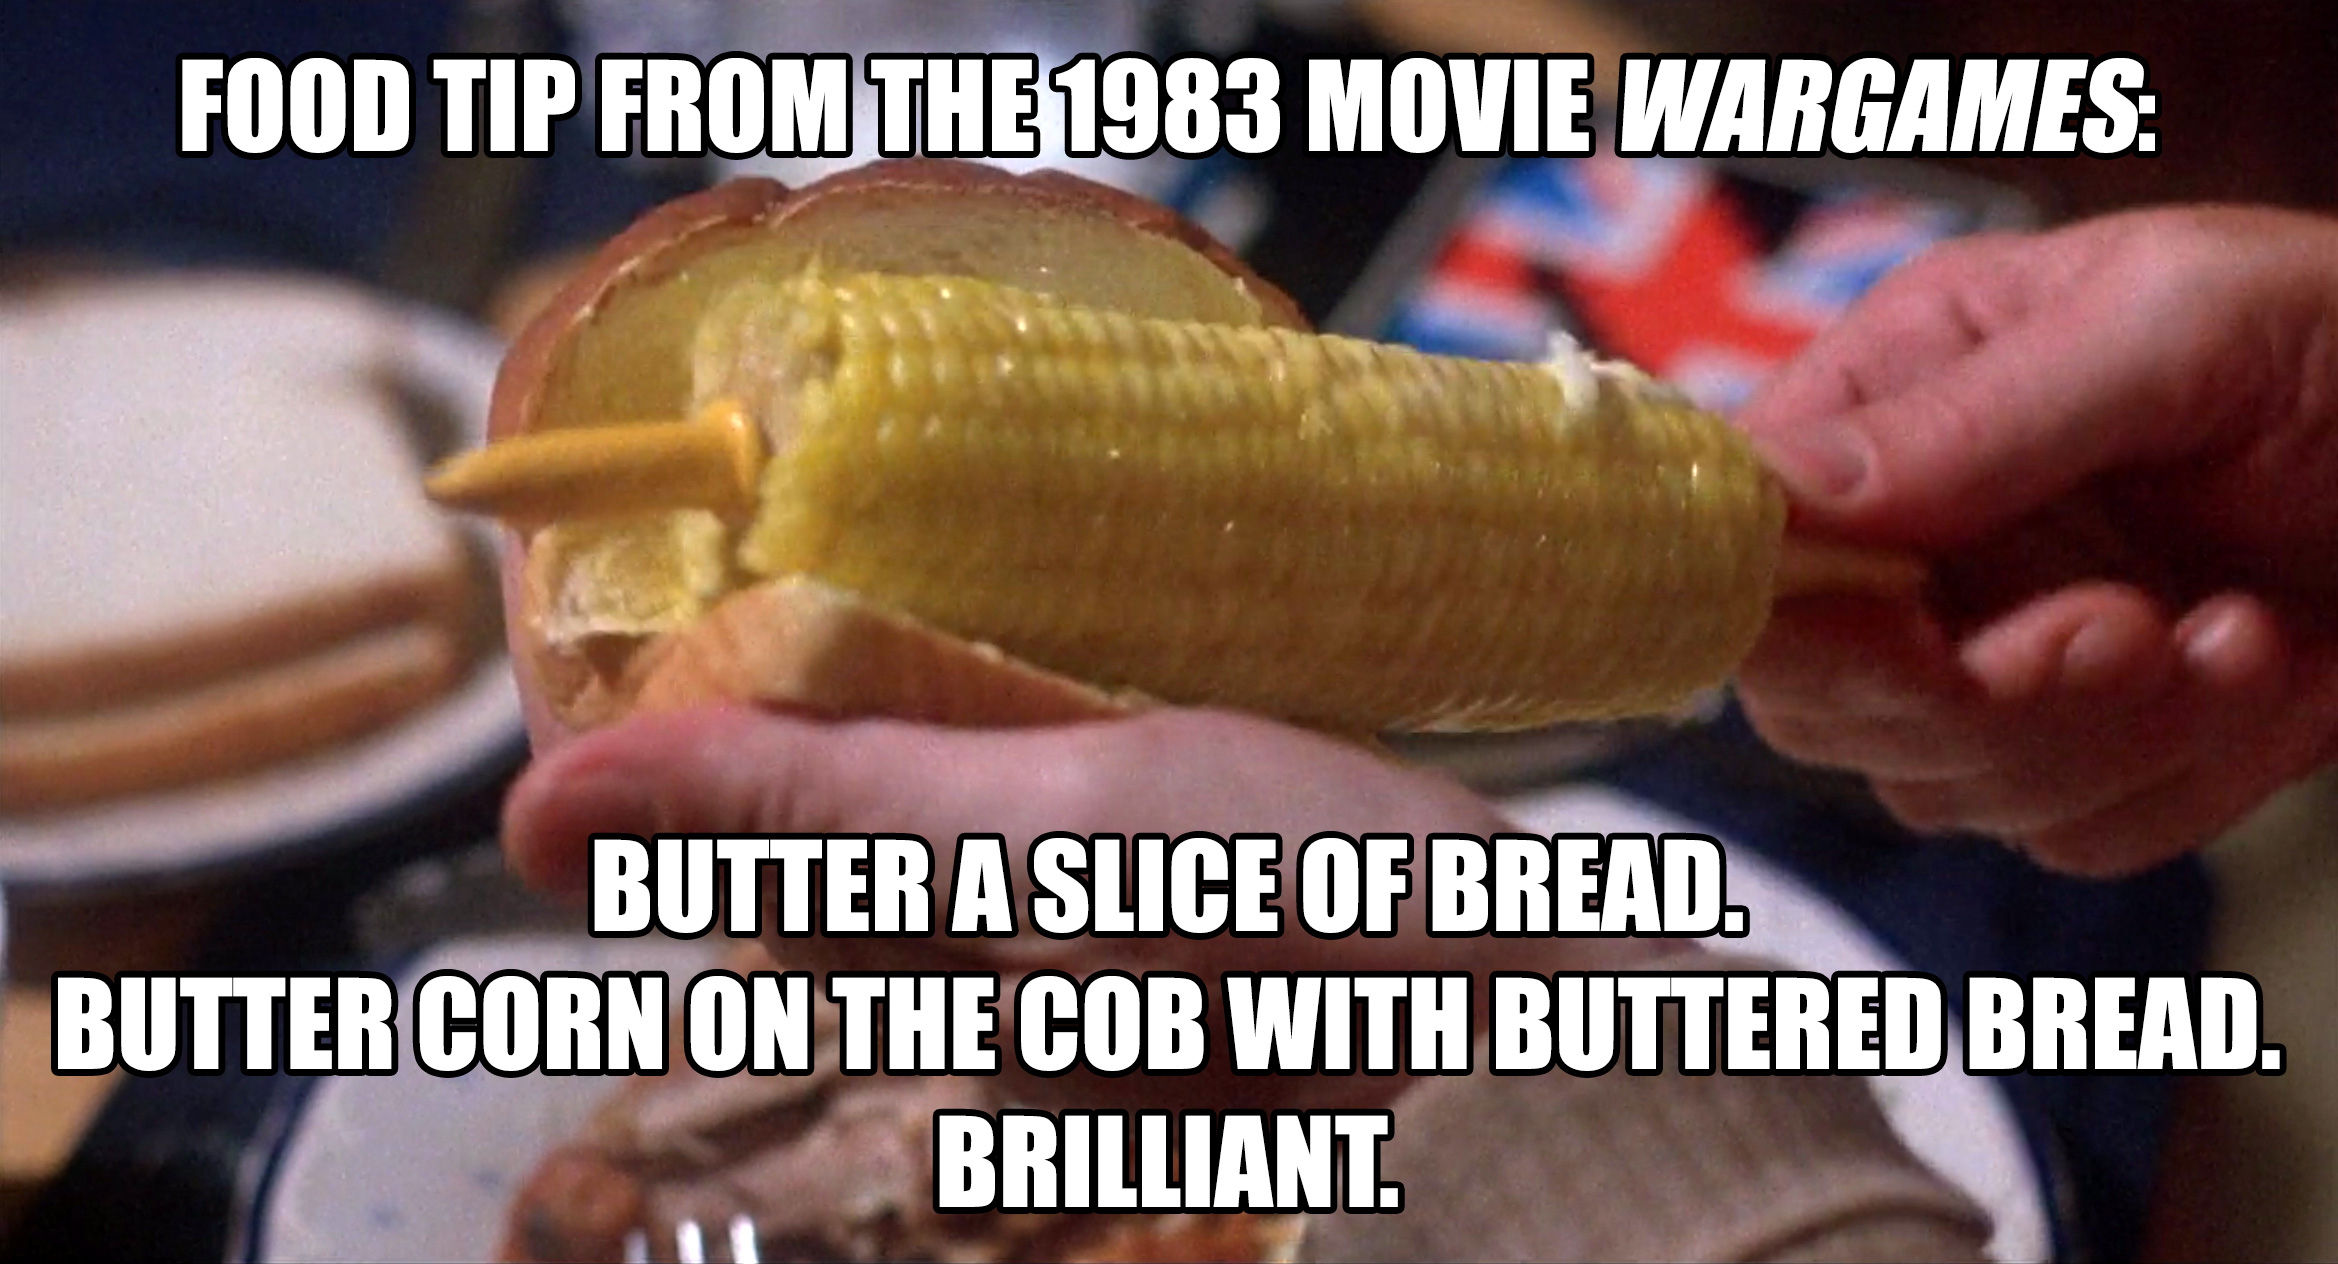 Food tip from the 1983 movie  WarGames :  Butter a slice ofbread. Buttercorn on the cobwith buttered bread. Brilliant.